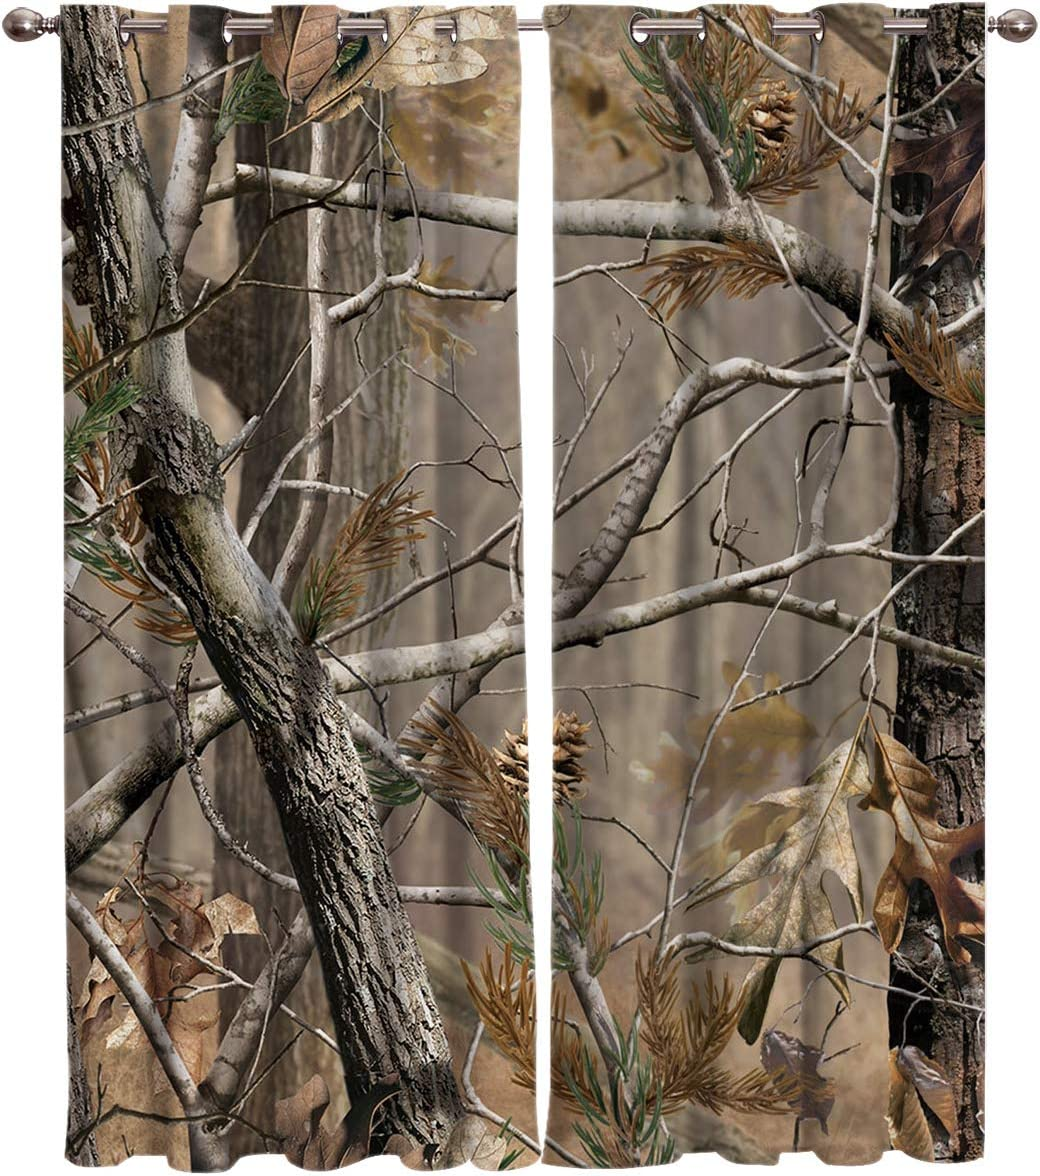 FortuneHouse8 Blackout Curtains Thermal Insulated Realtree Camouflage Room Drapes Window Curtain for Bedroom Living Room Set of 2 Curtain Panels Home Fashion 52x96inch